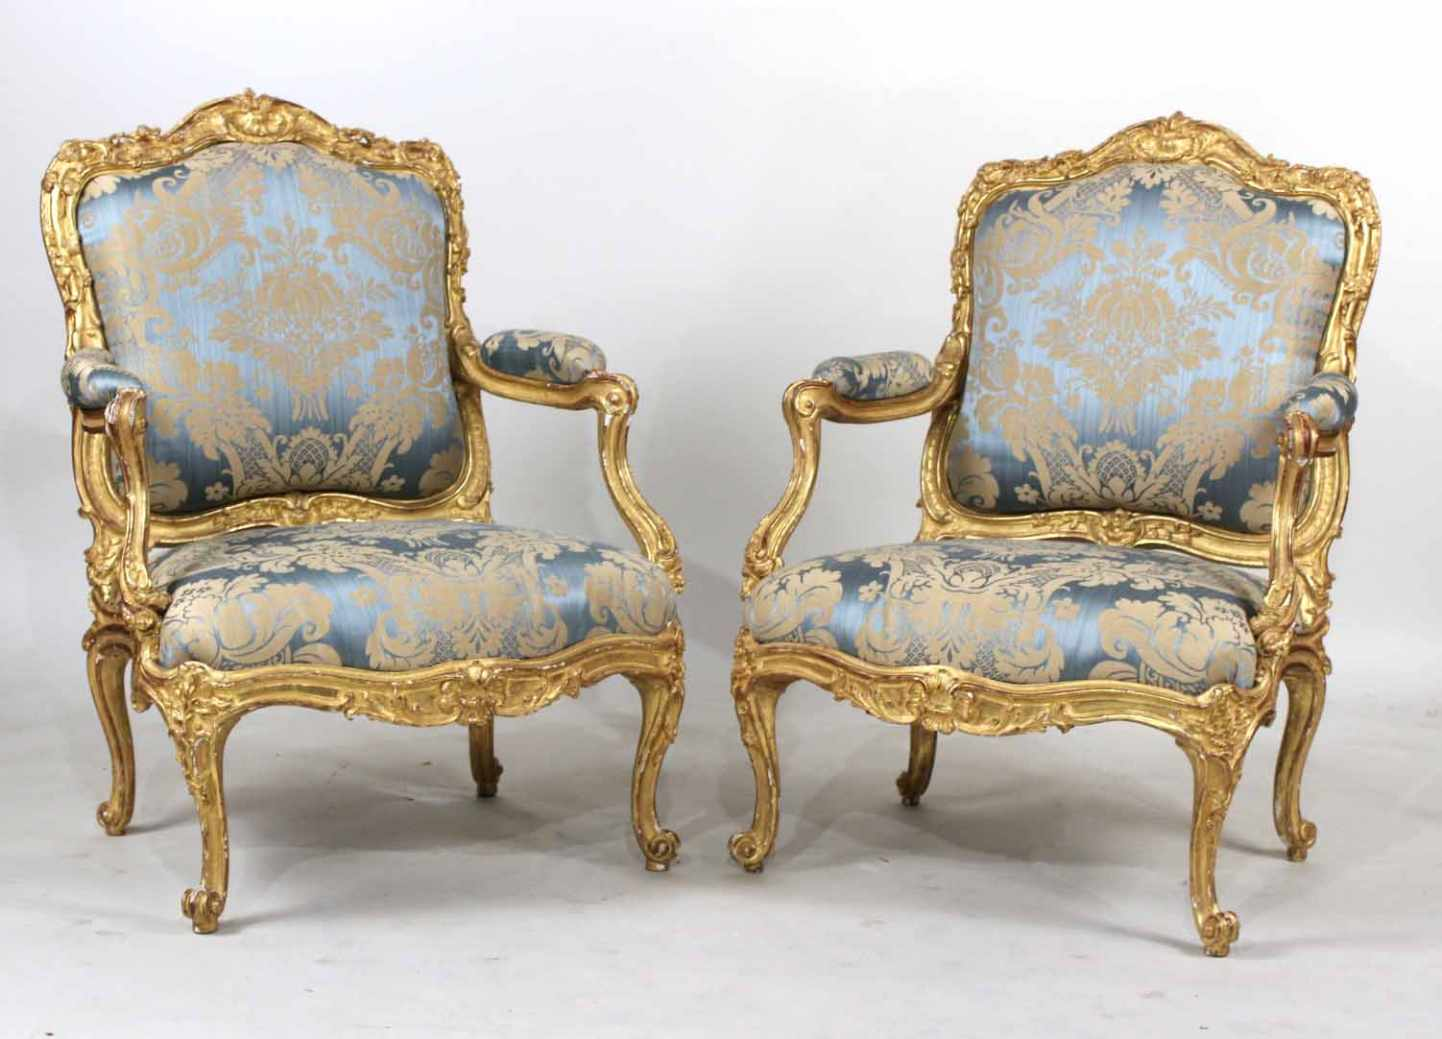 Pair of fauteuils a la reine French armchairs, circa 1755-1760, by Jean Gourdin.